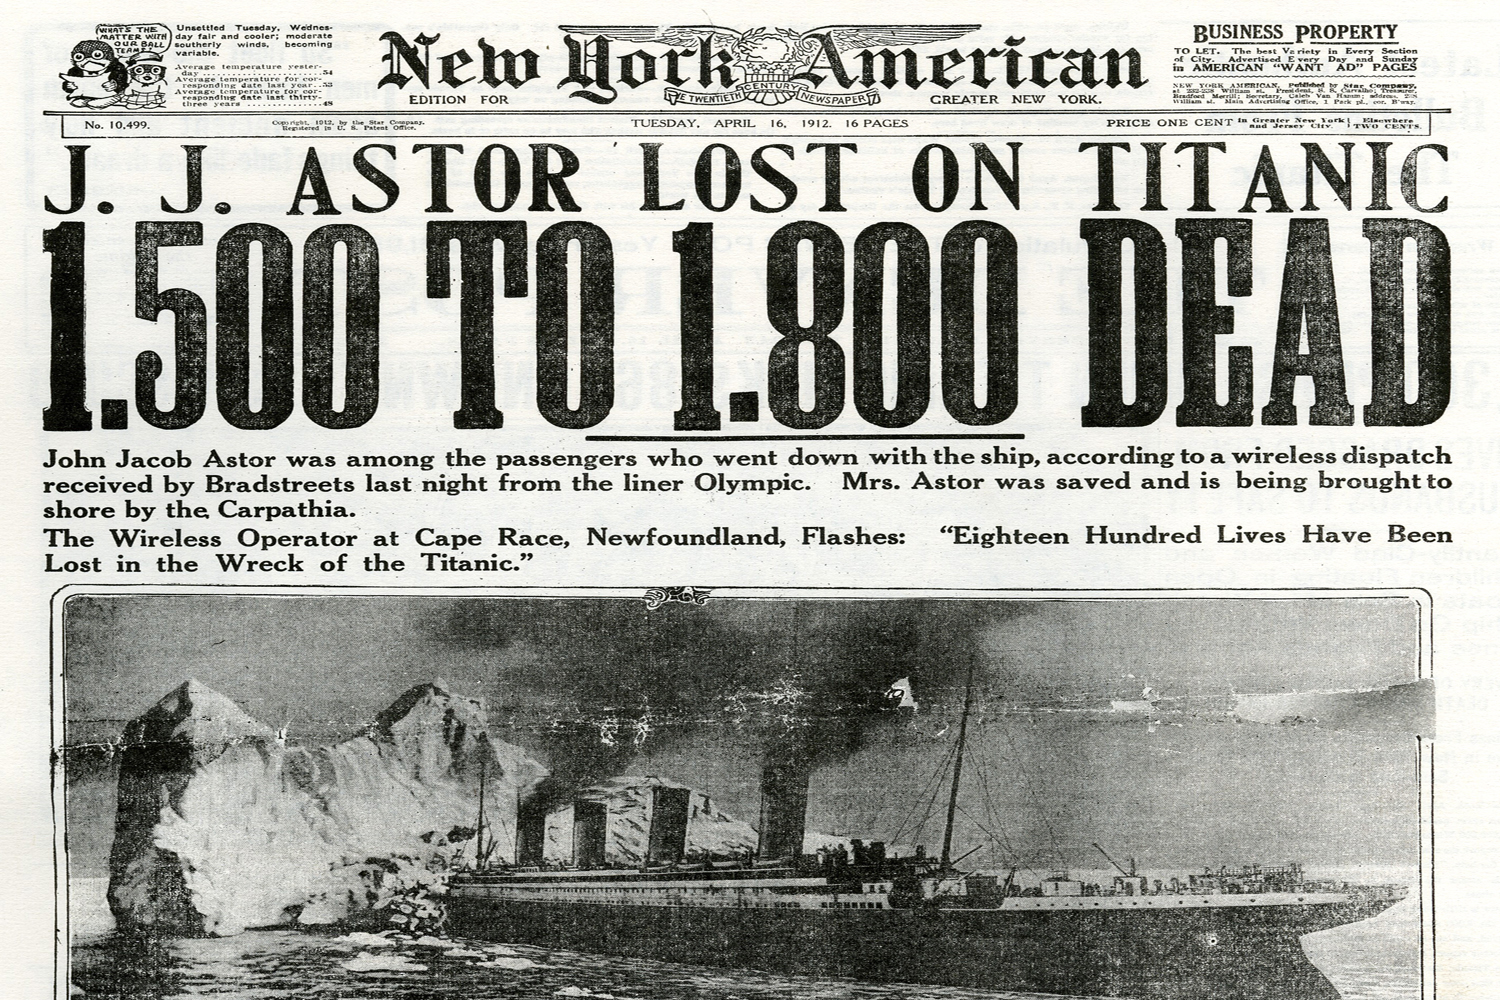 Compilation of 1912 Newspaper Articles Covering RMS Titanic